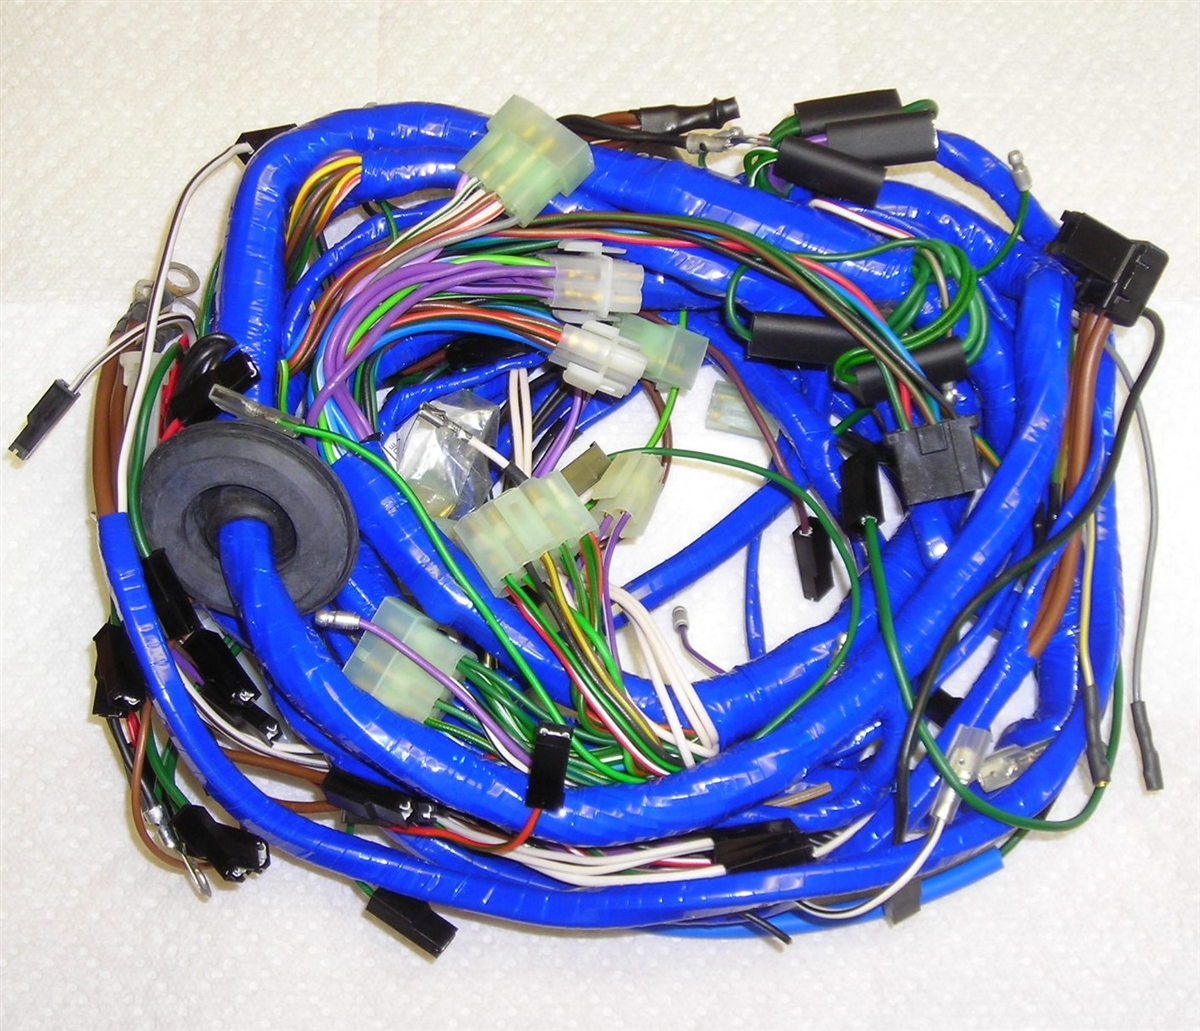 small resolution of mgb 1980 main wiring harness 522 mgb headlight wiring diagram mgb wiring harness